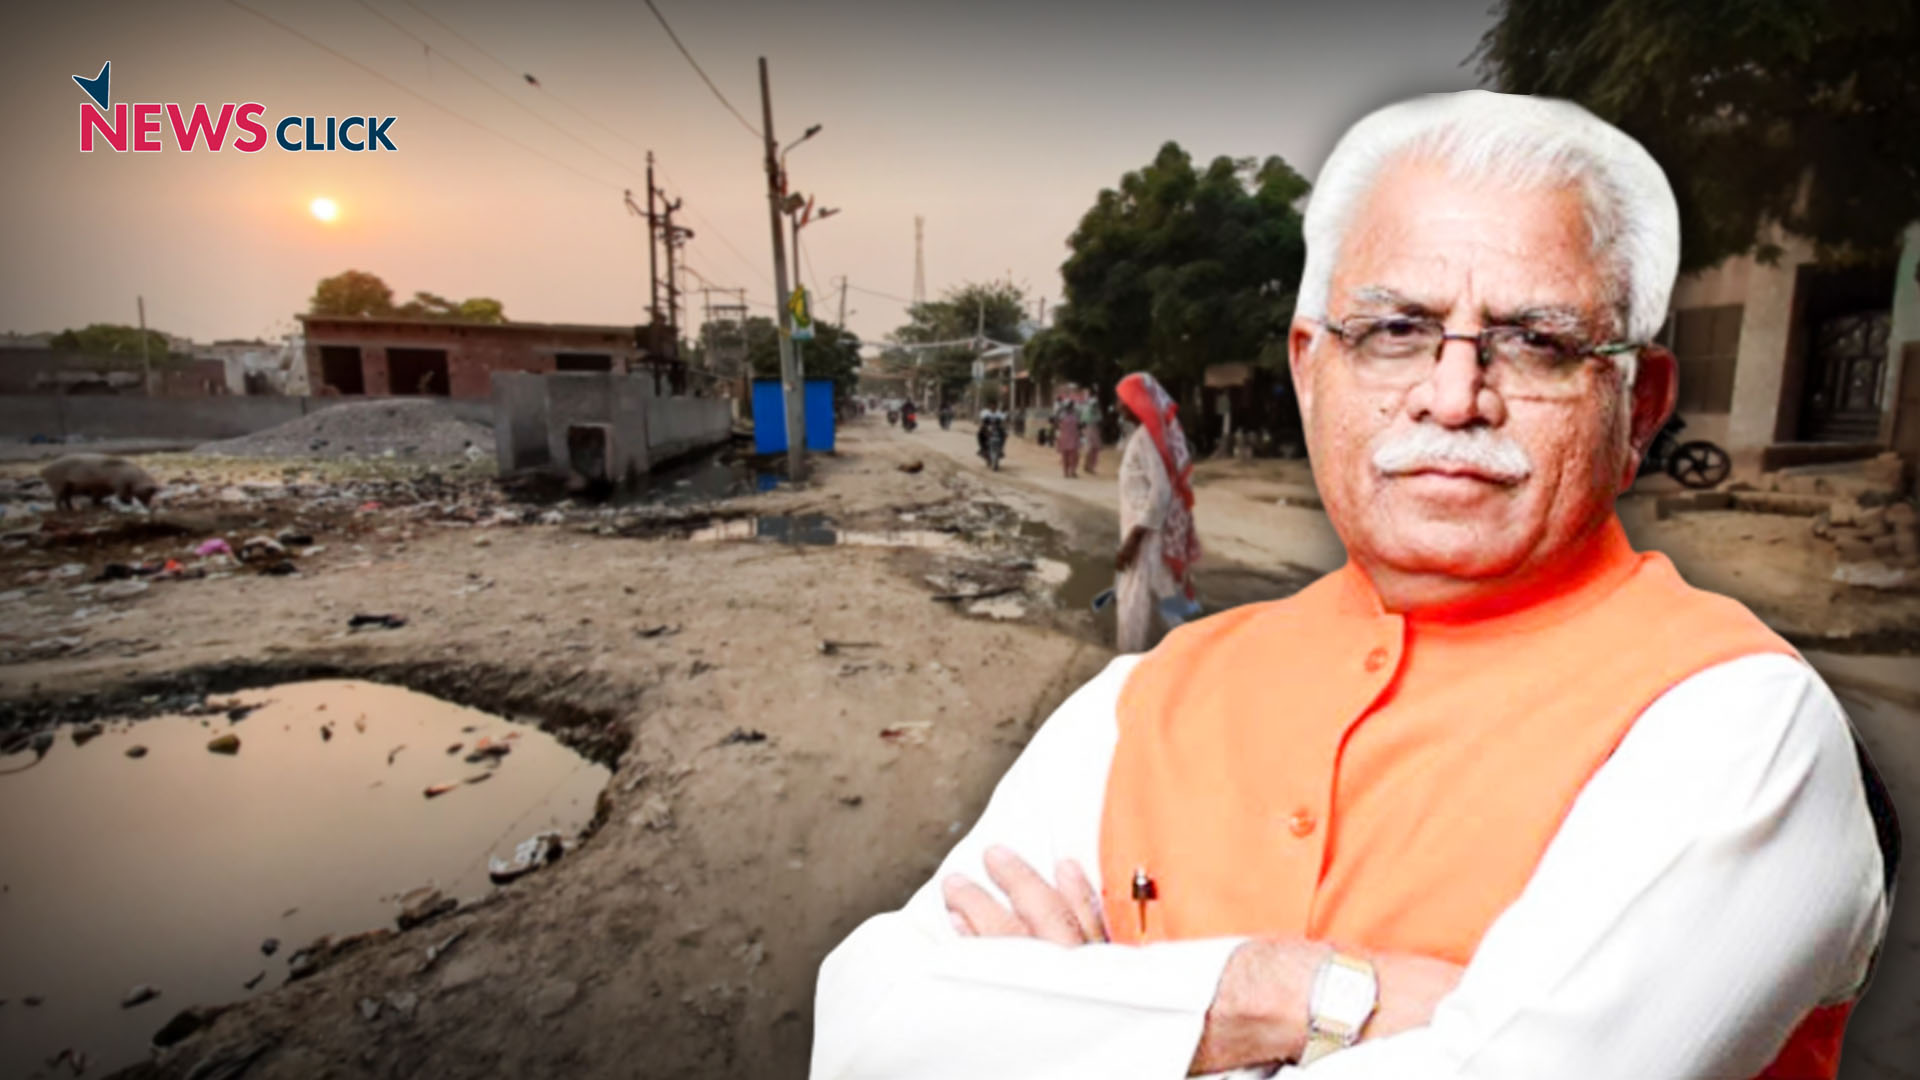 Haryana Polls: CM Manohar Lal Khattar's Adopted Village Waiting to Become 'Adarsh Gram'